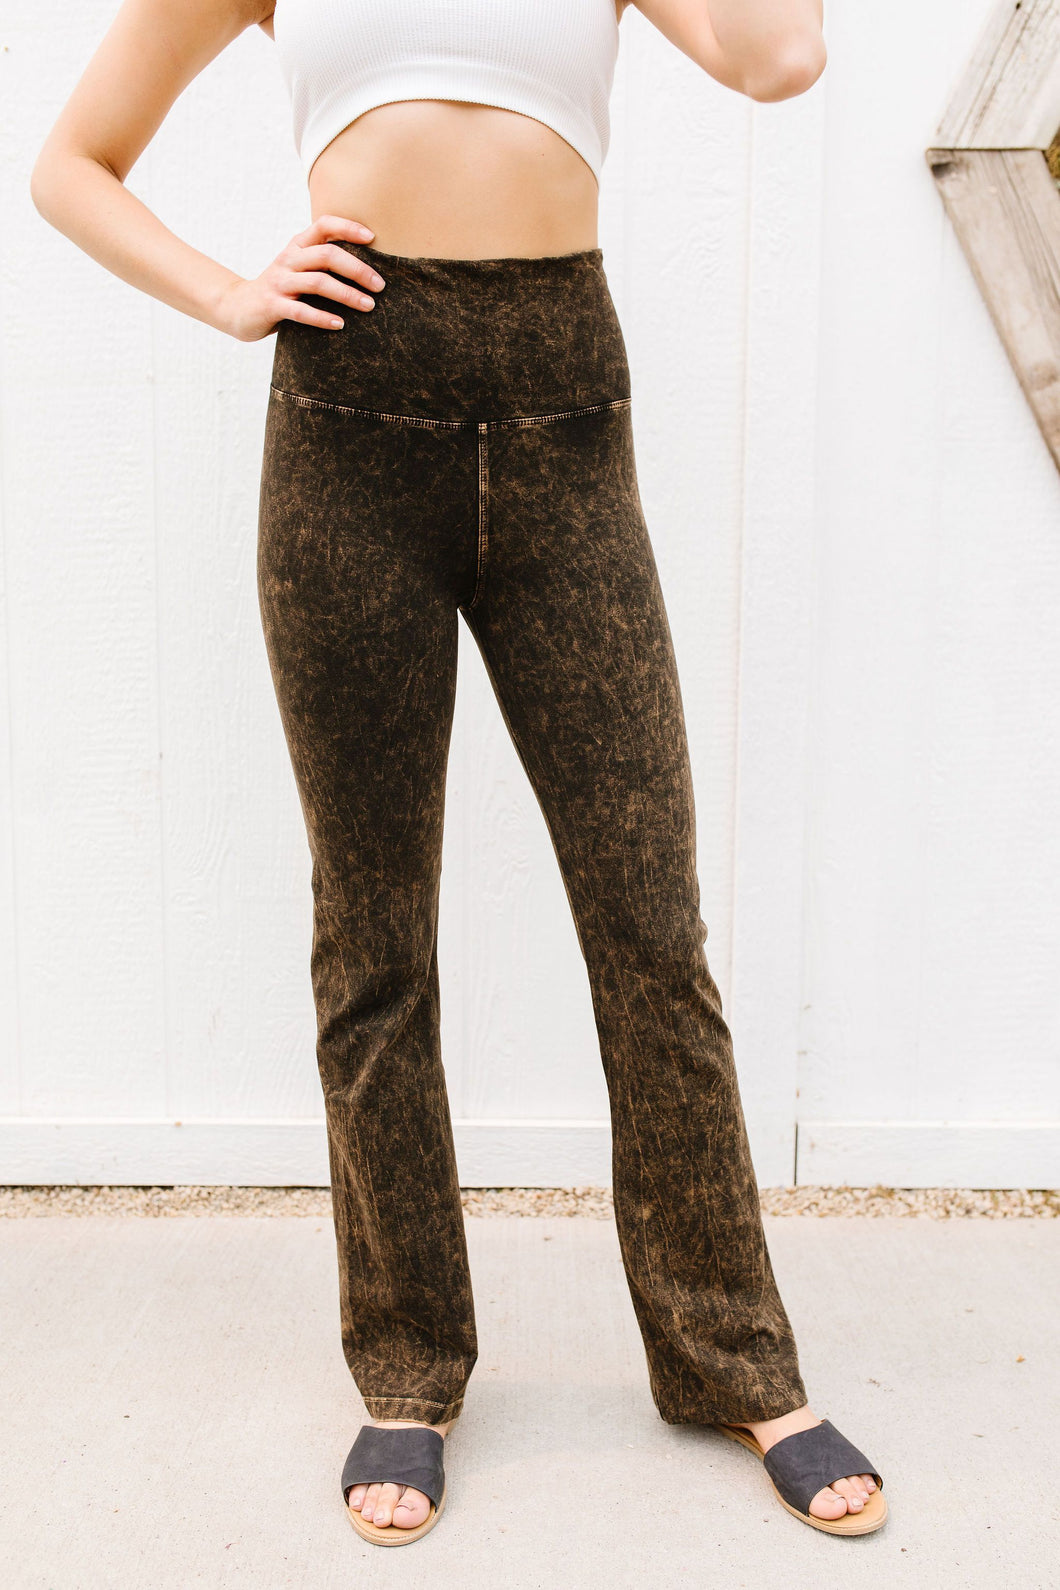 Mountain Pose Mineral Wash Yoga Pants In Brown